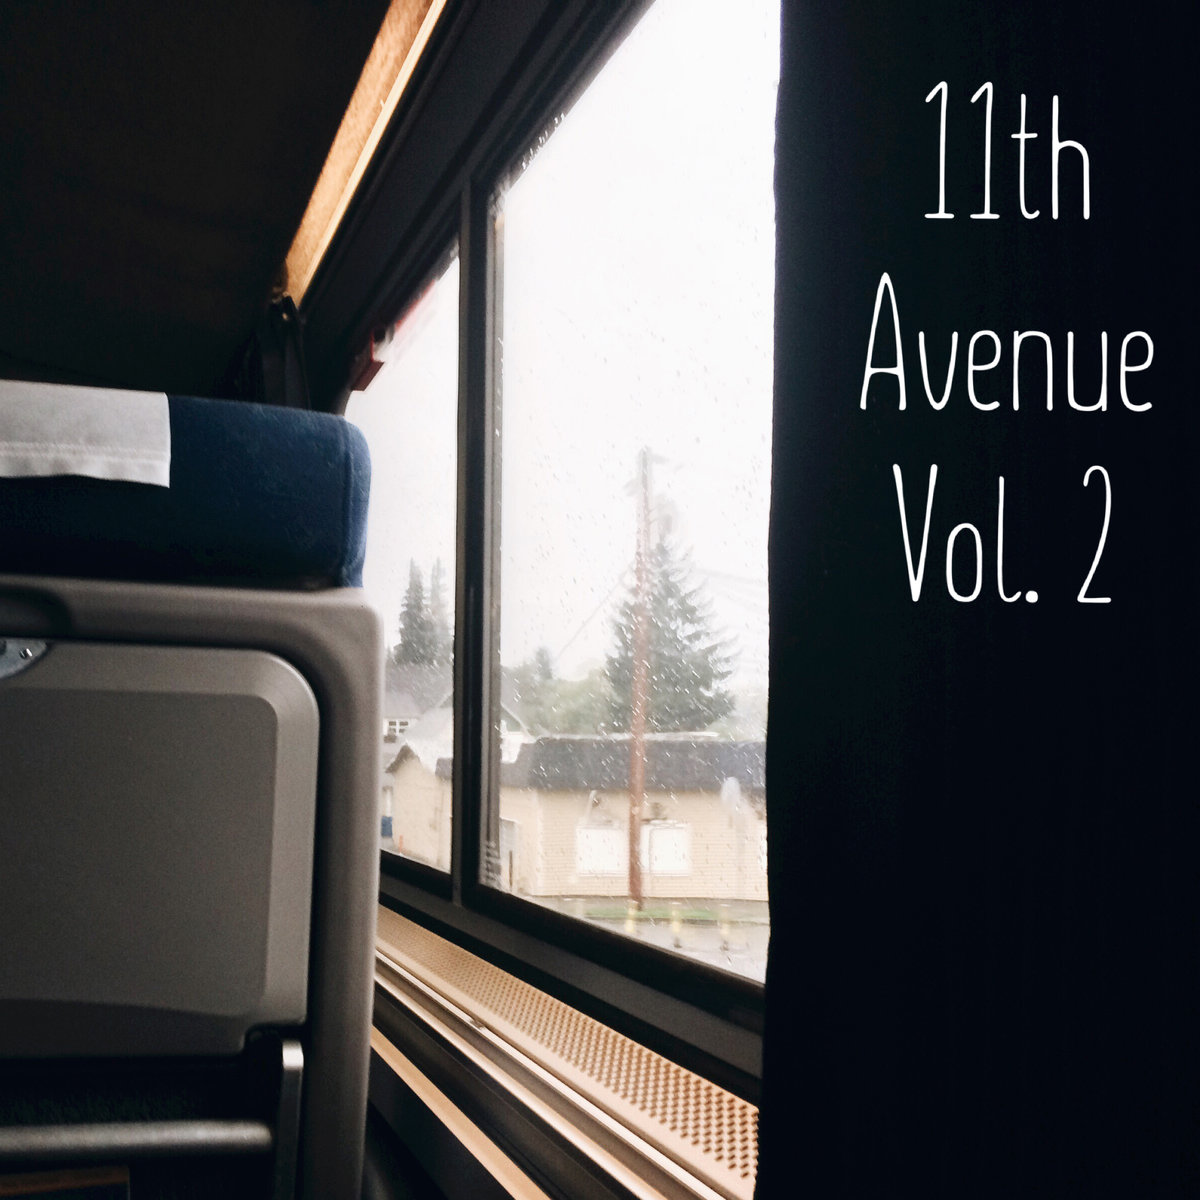 Brendan Getzell - My Heart Is In A State of Revolution @ '11th Avenue Vol. 2' album (11th ave records, 11thaverecords 11th avenue)